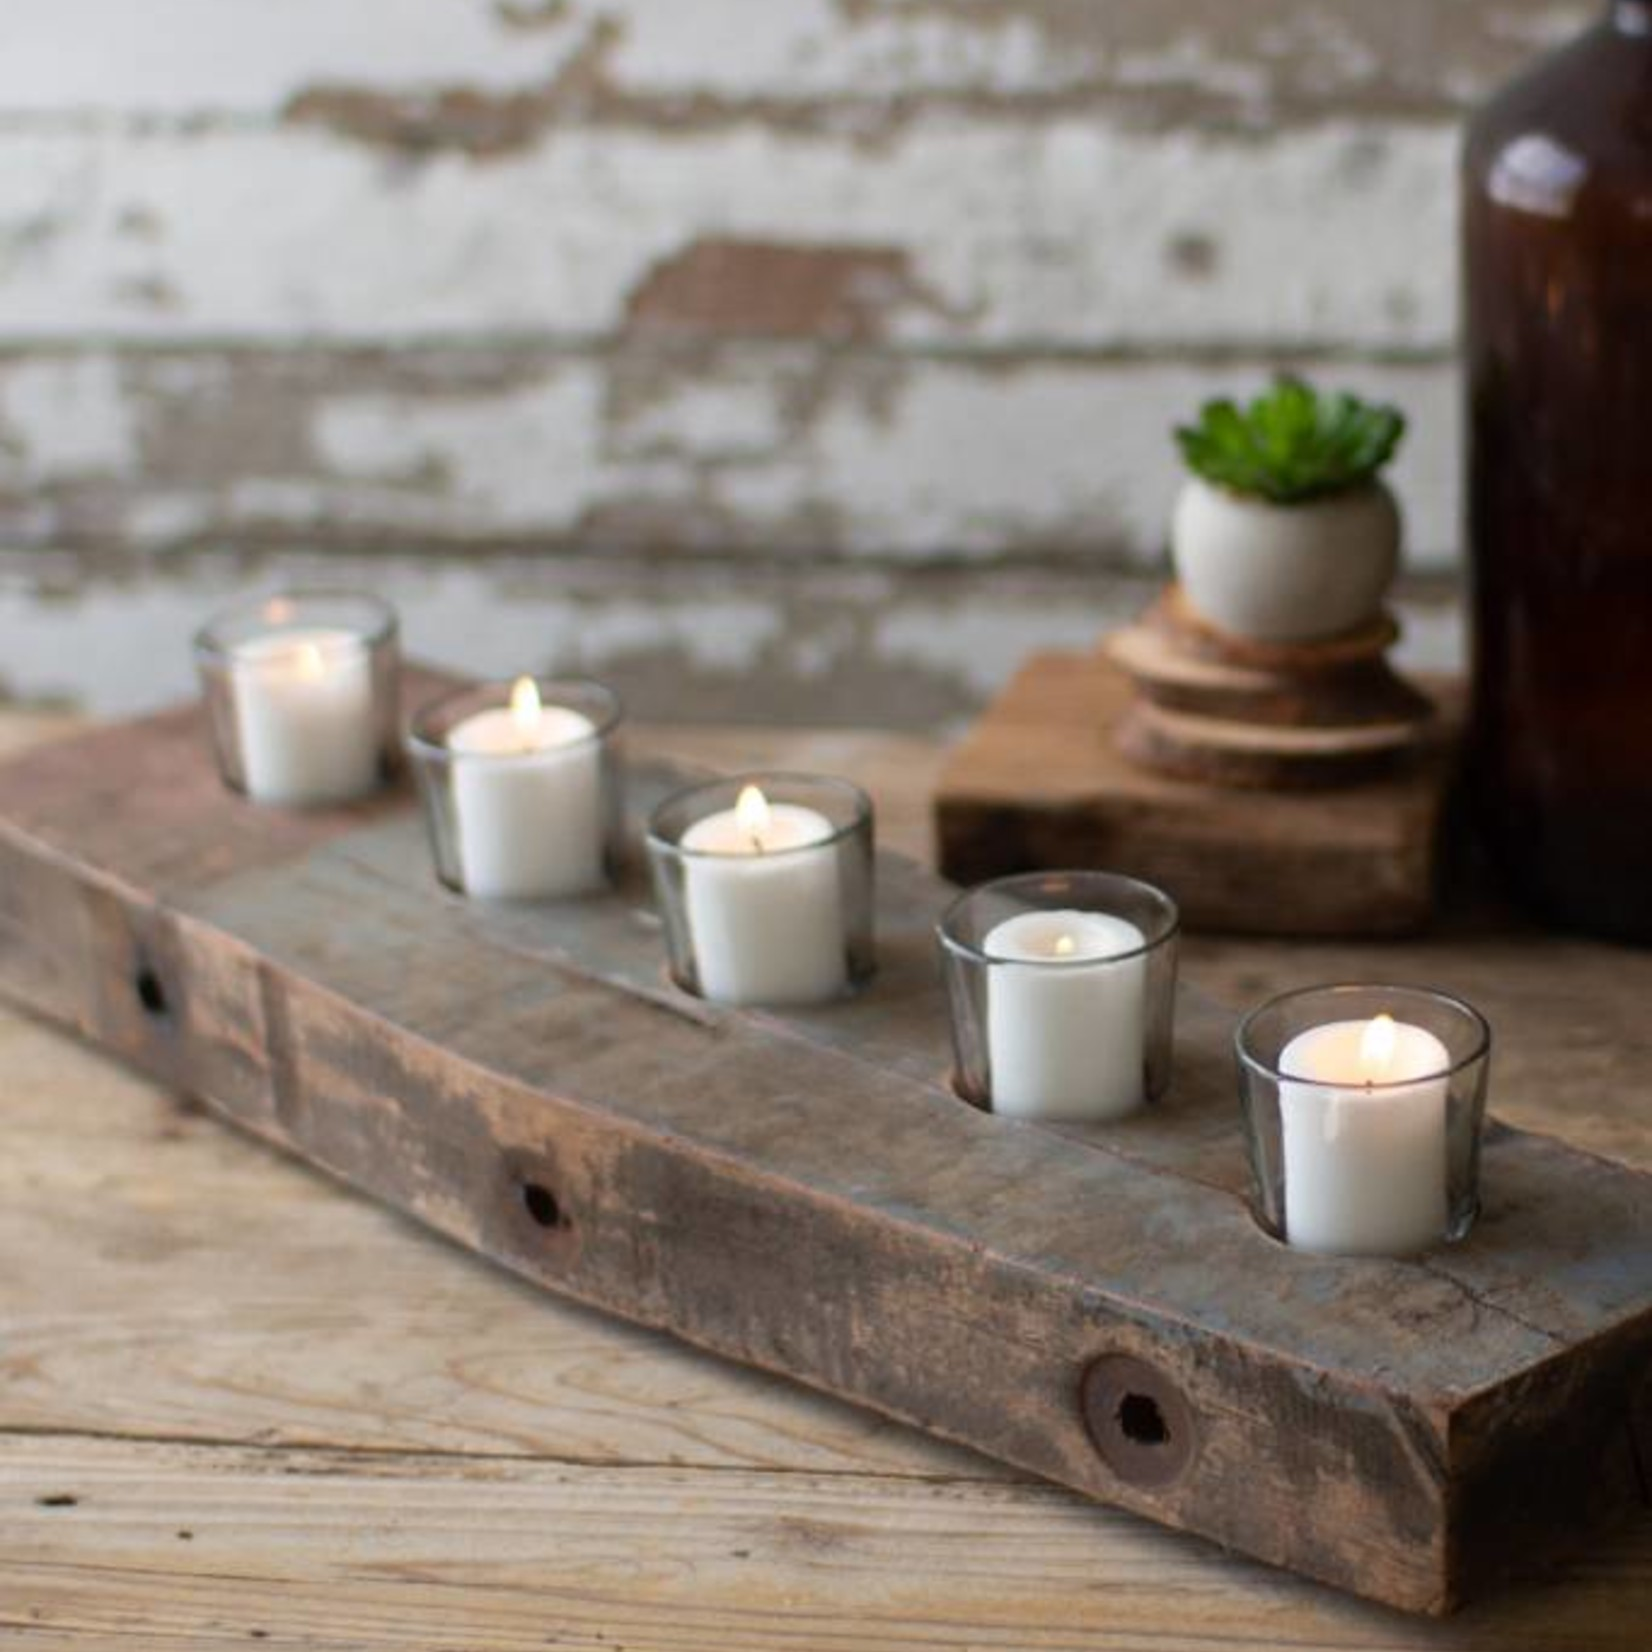 Recycled Wooden Beam with 5 Votive Glass Holders